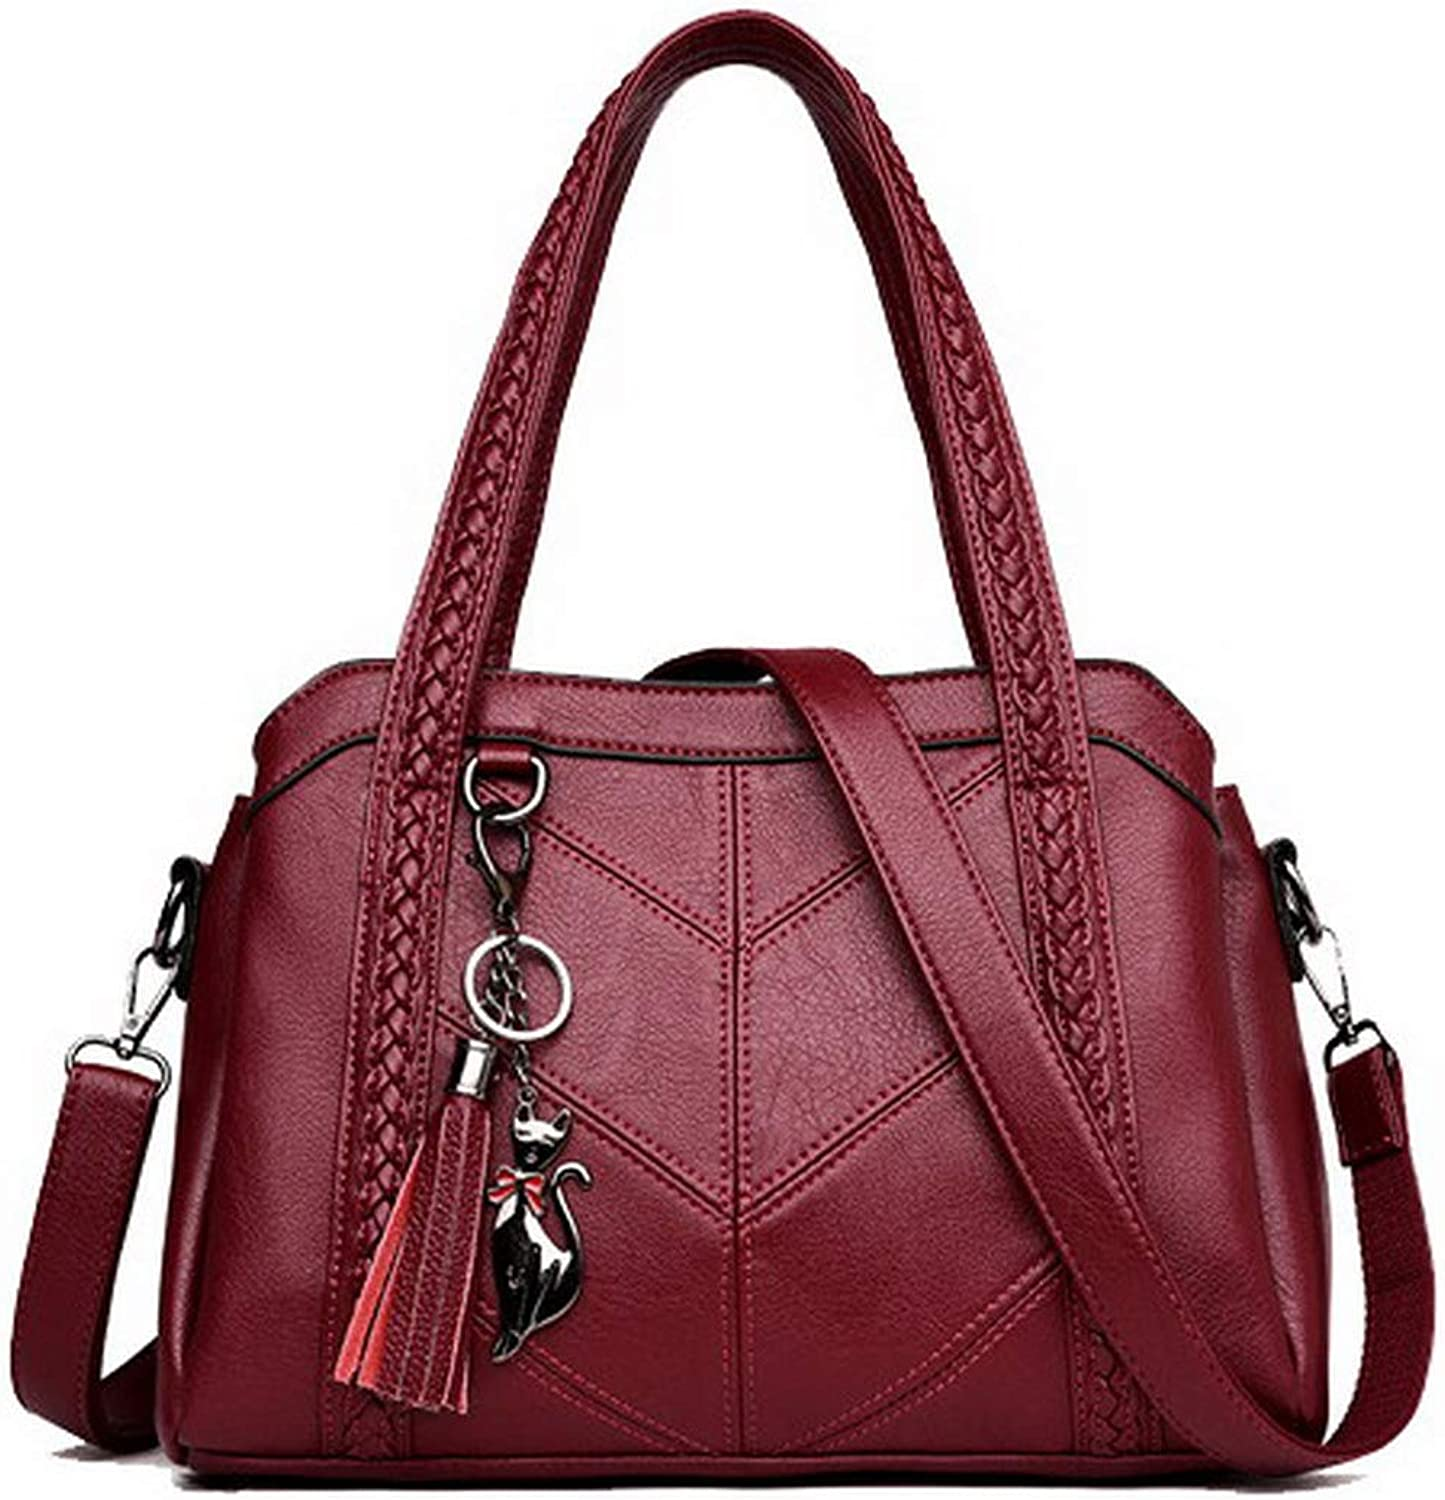 WeenFashion Women's Tote Bags Casual Zippers PU Crossbody Bags,AMGBY181595